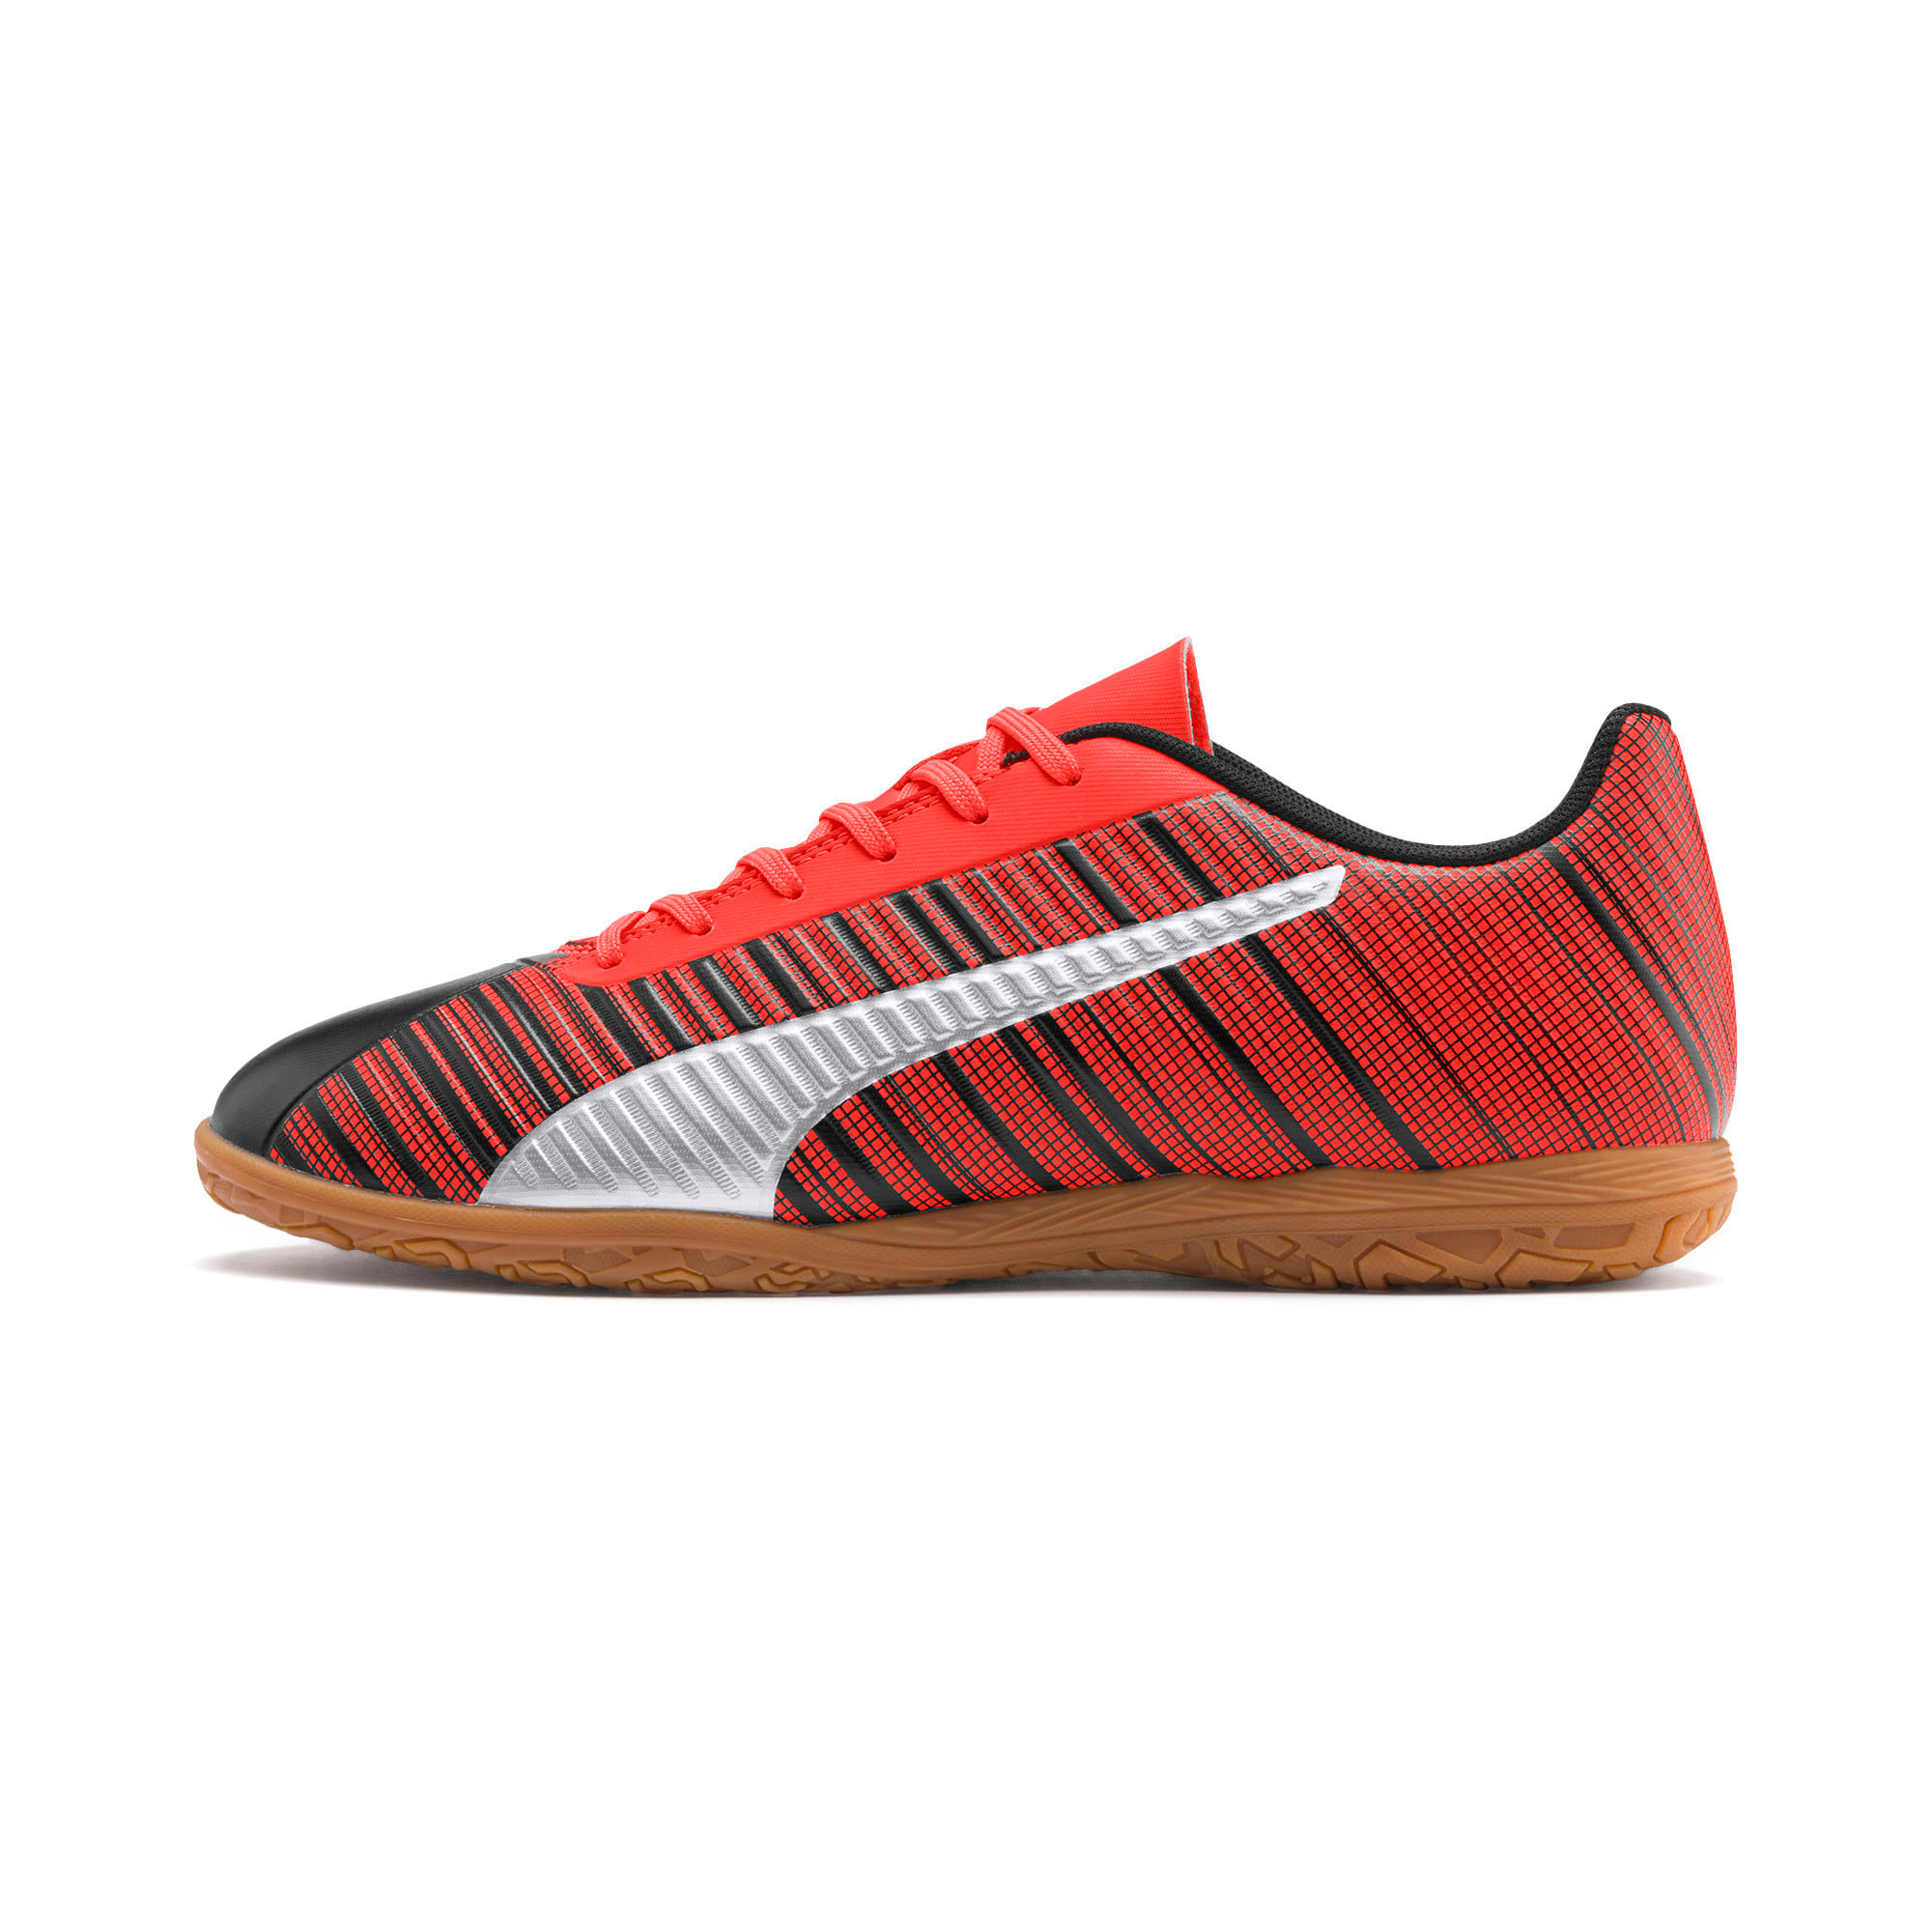 Thumbnail 1 of PUMA ONE 5.4 IT Men's Soccer Shoes, Black-Red-Silver-Gum, medium